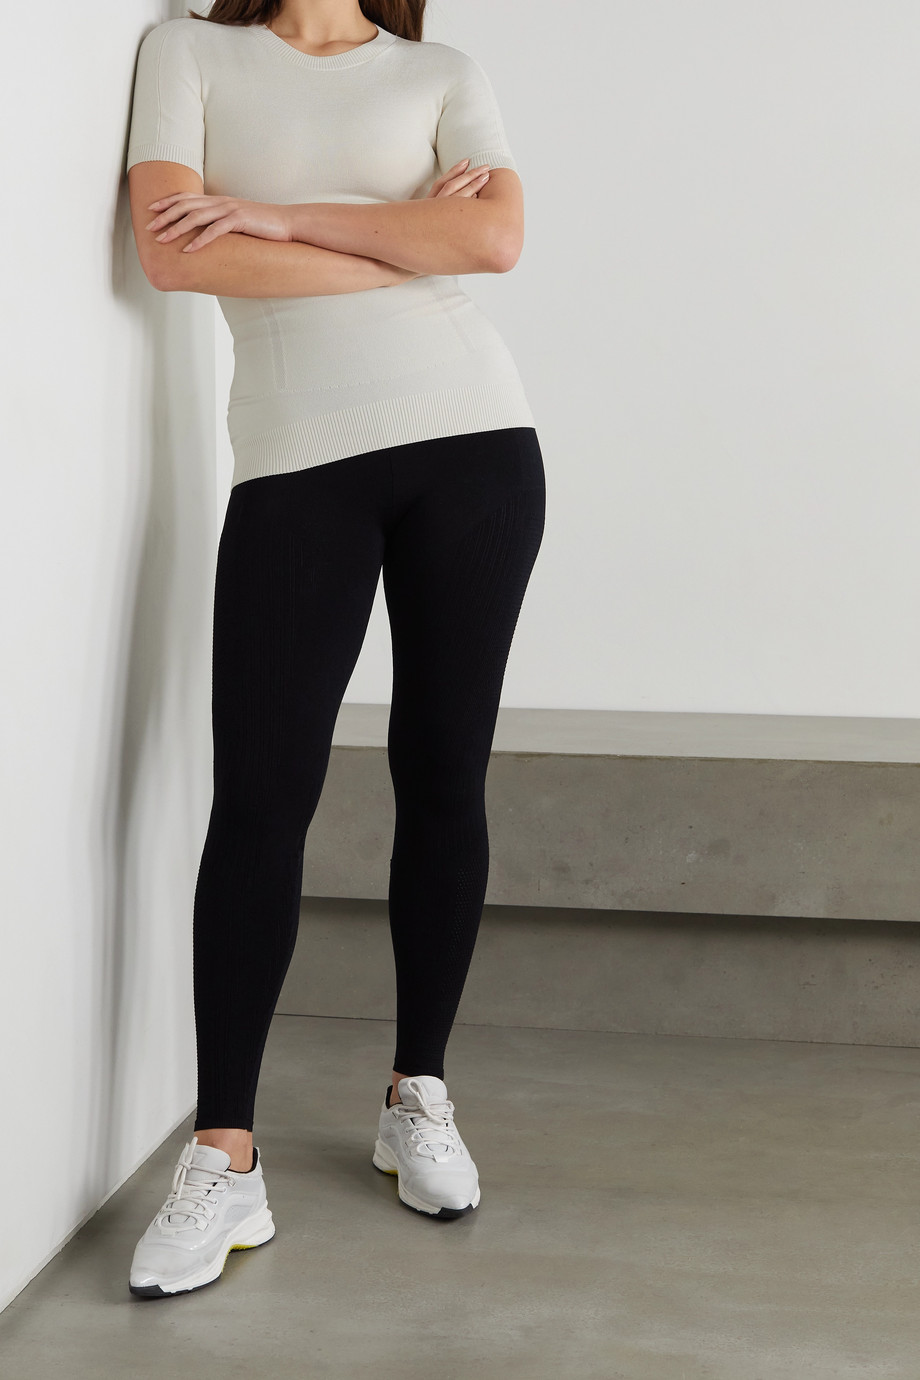 AZ Factory MyBody stretch-knit top